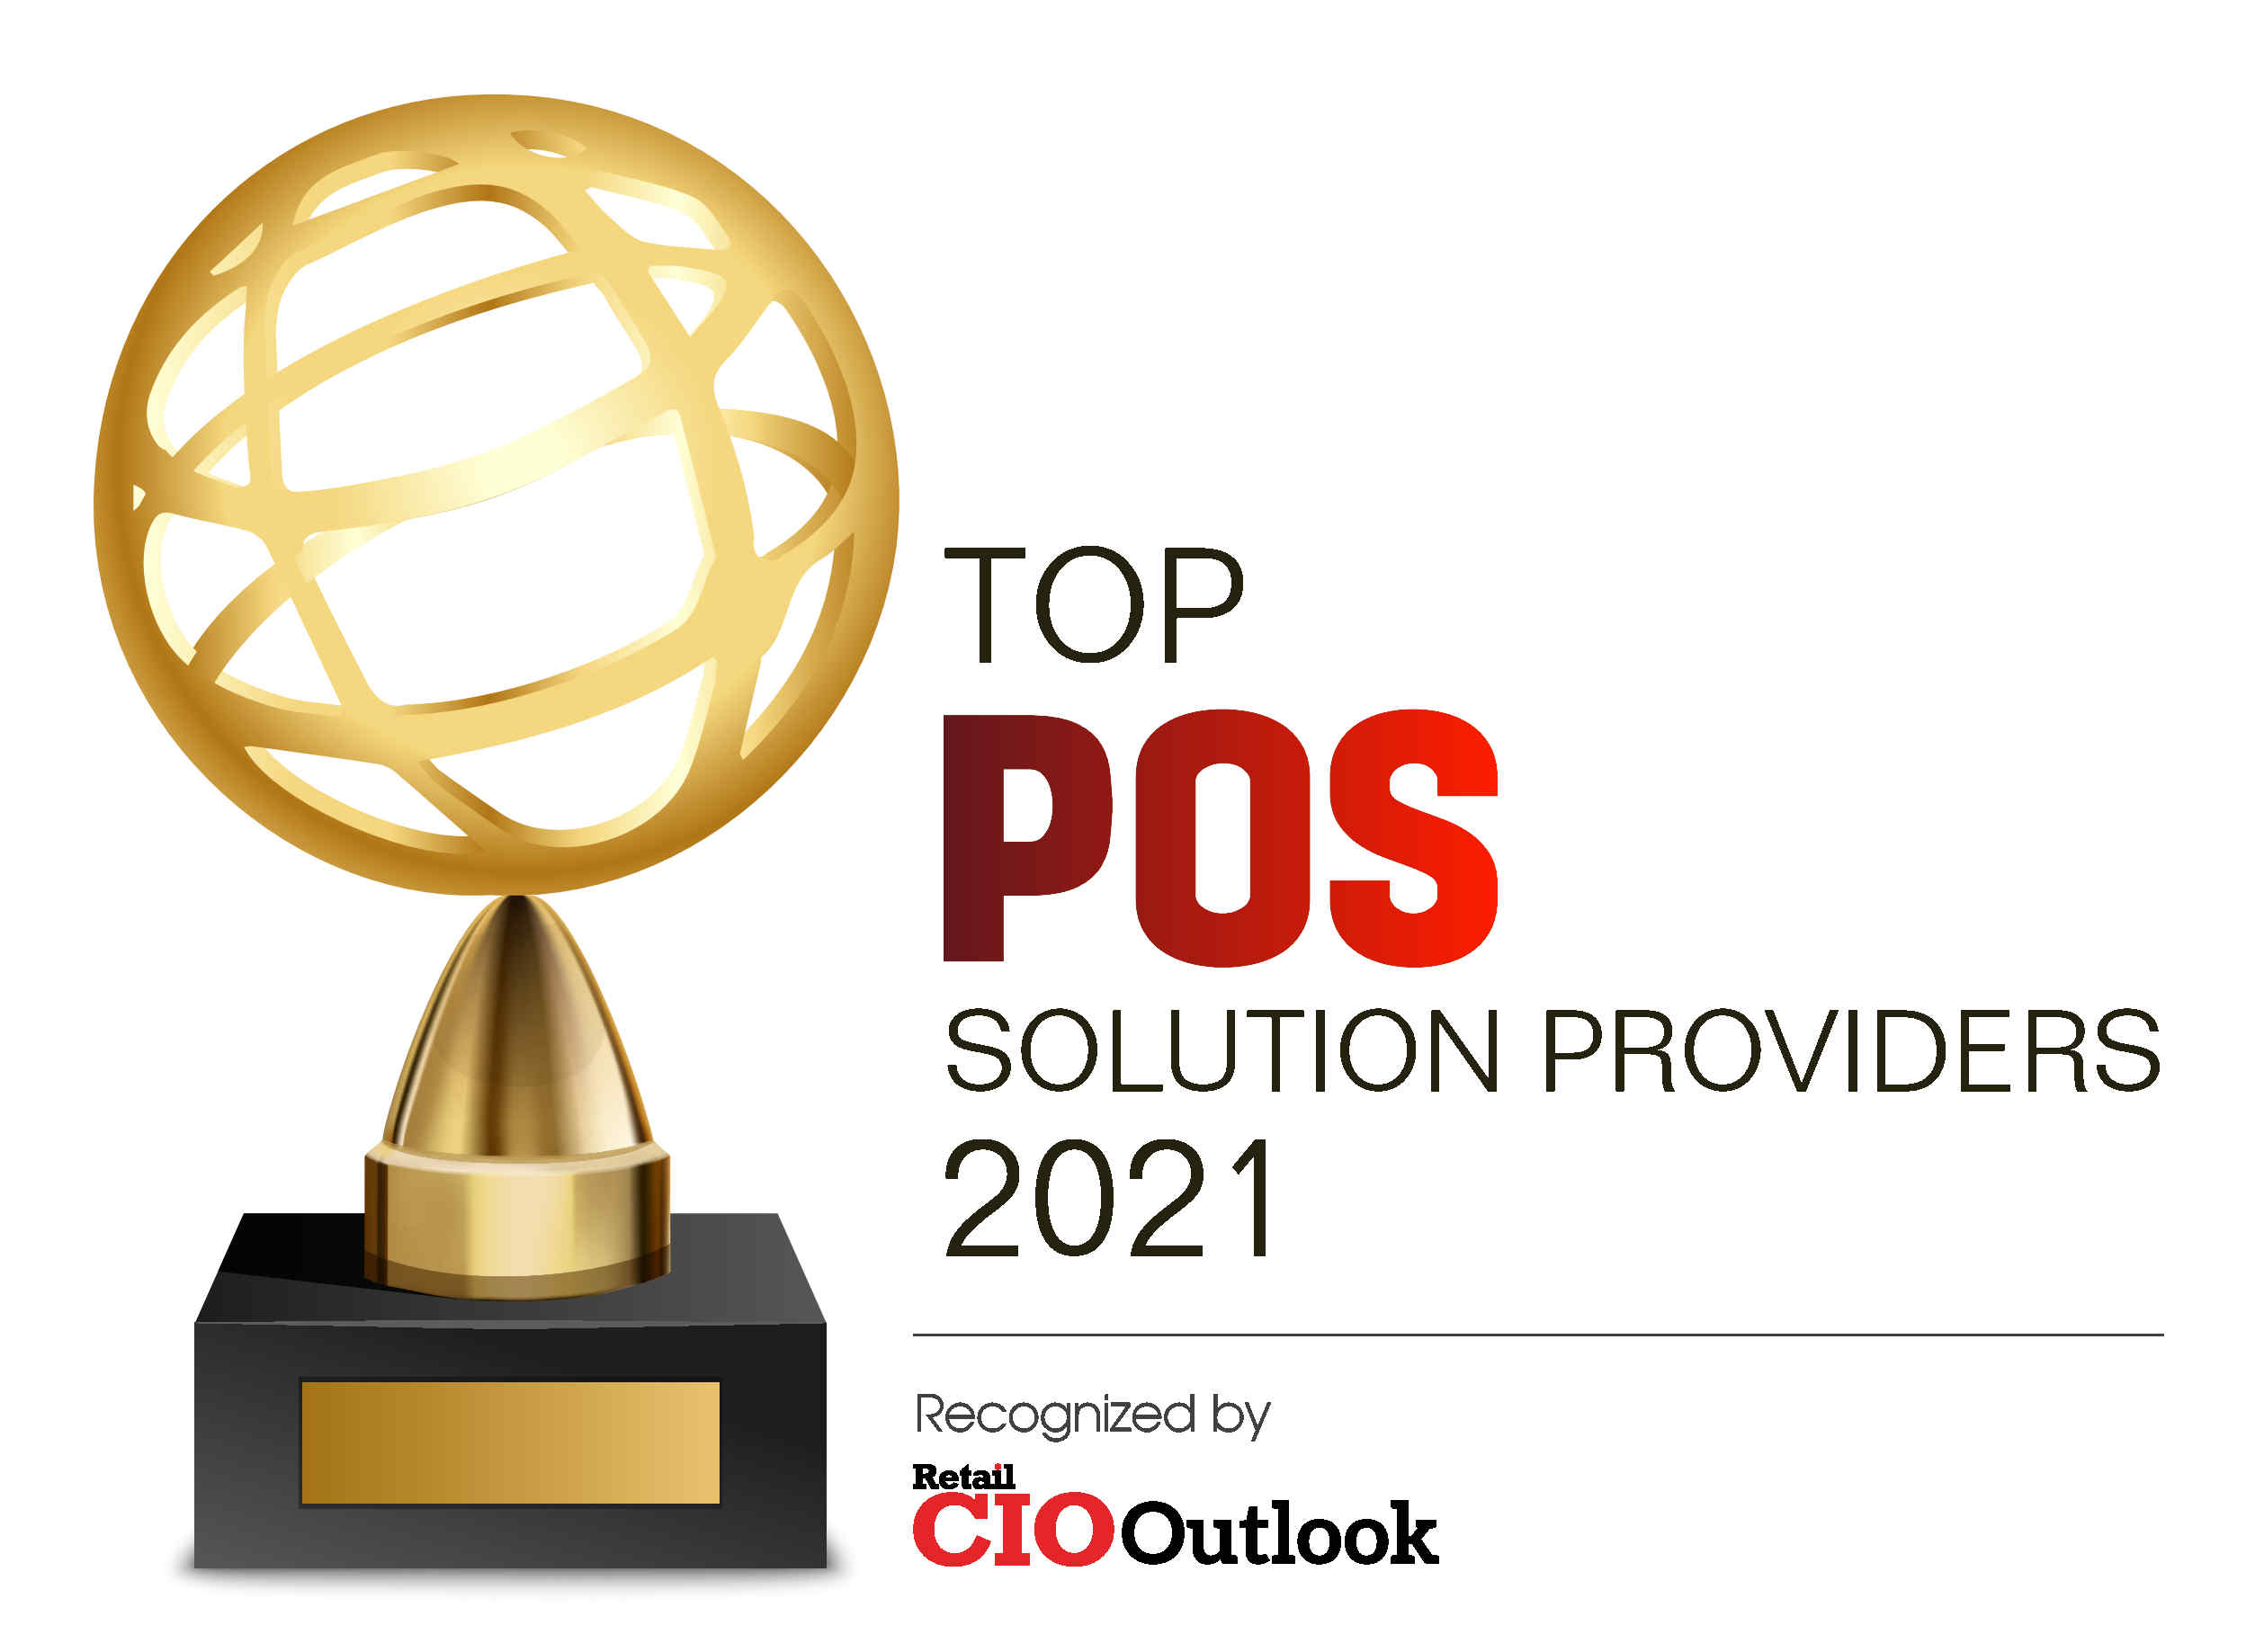 point of sale solution provider award